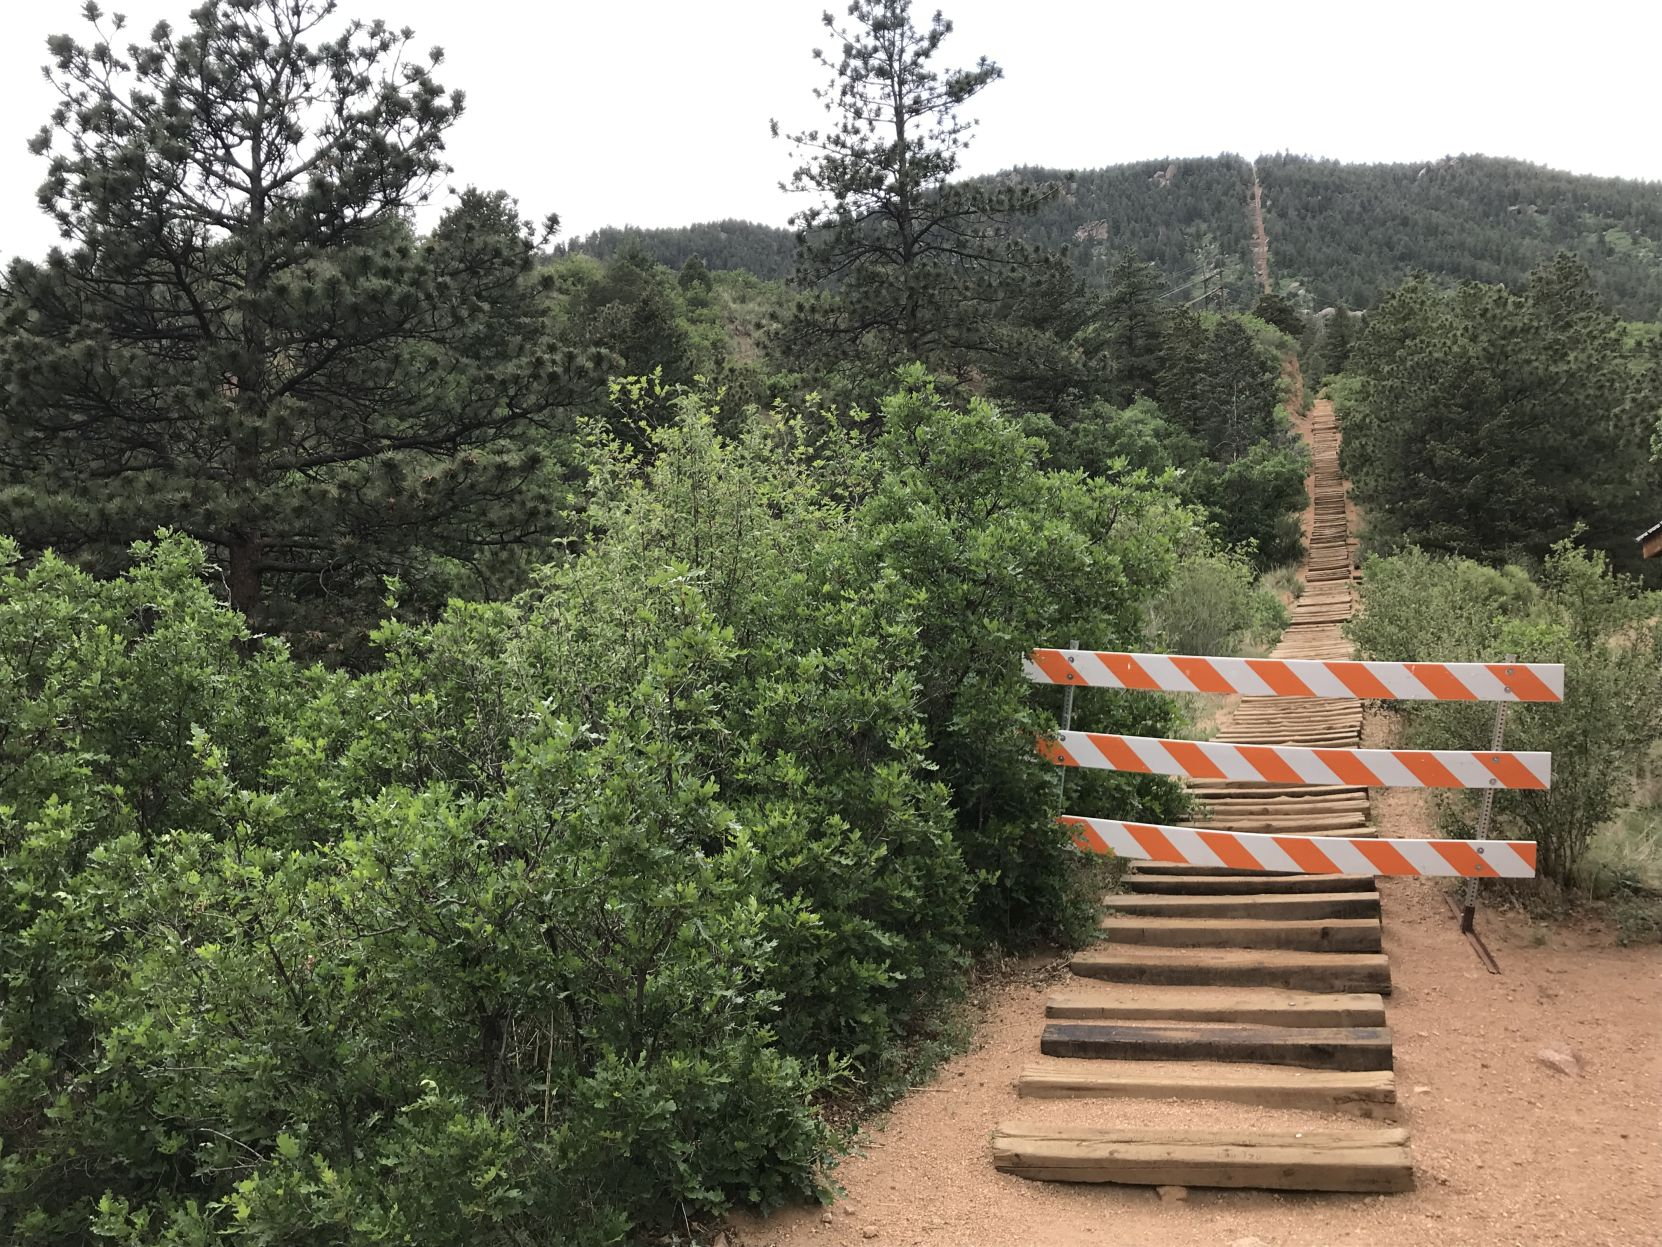 gazette.com - Seth Boster - Manitou Incline's future remains blurry entering 5th month of closure for popular recreation site